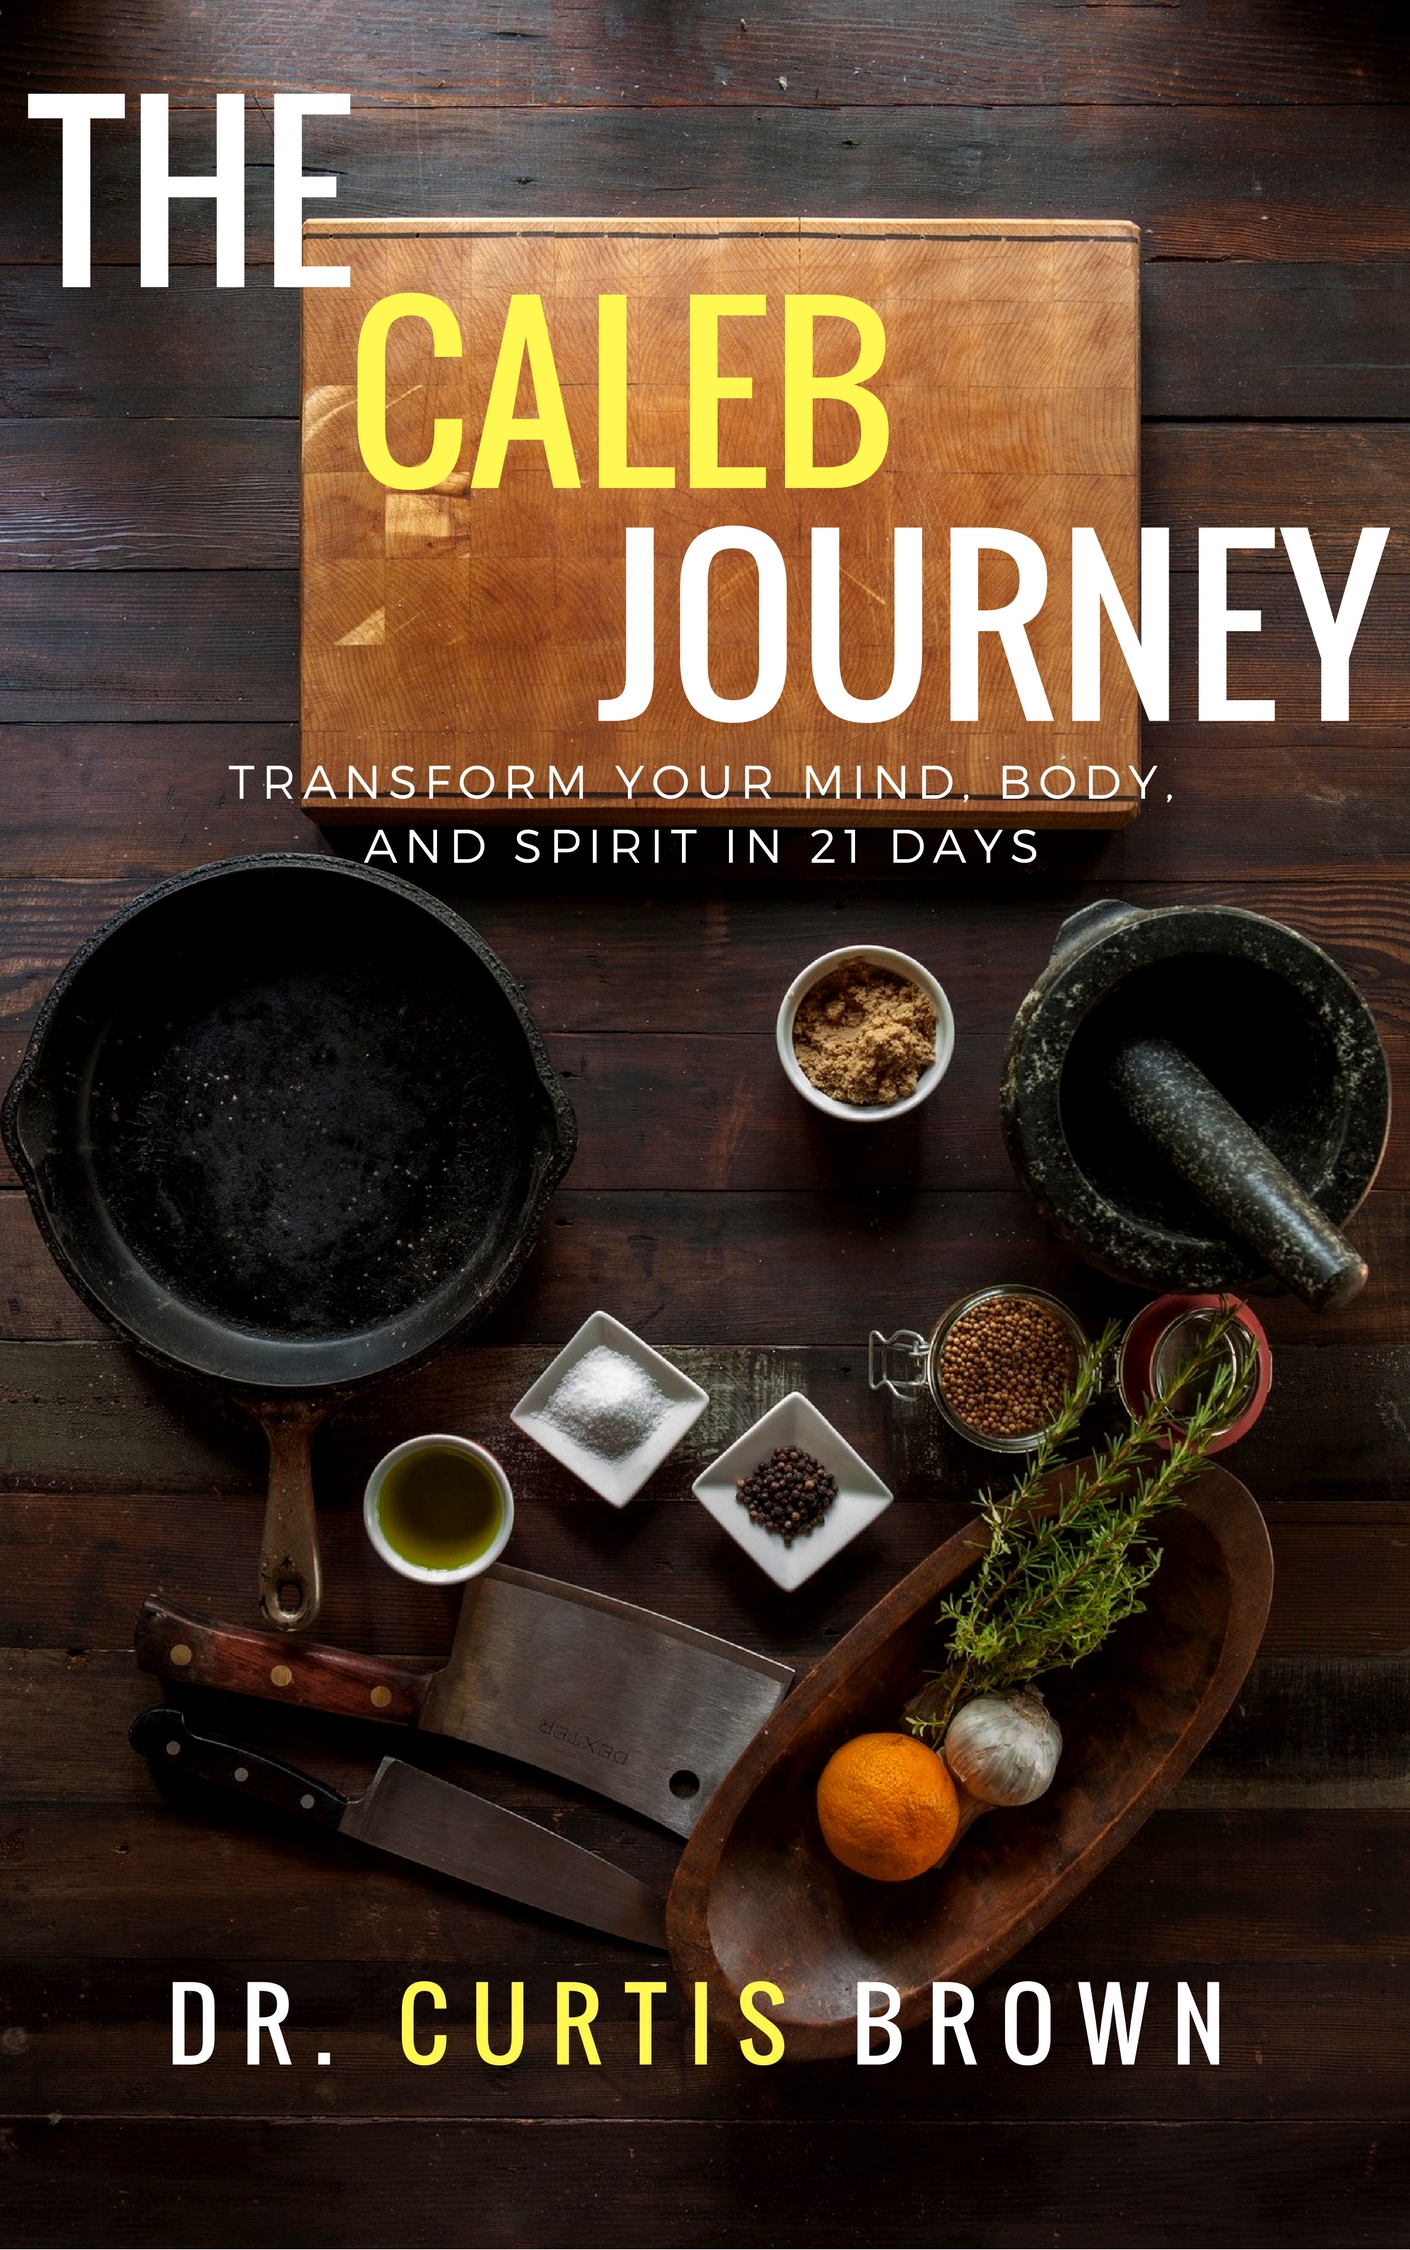 Click the photo to go to Amazon to view The Caleb Journey